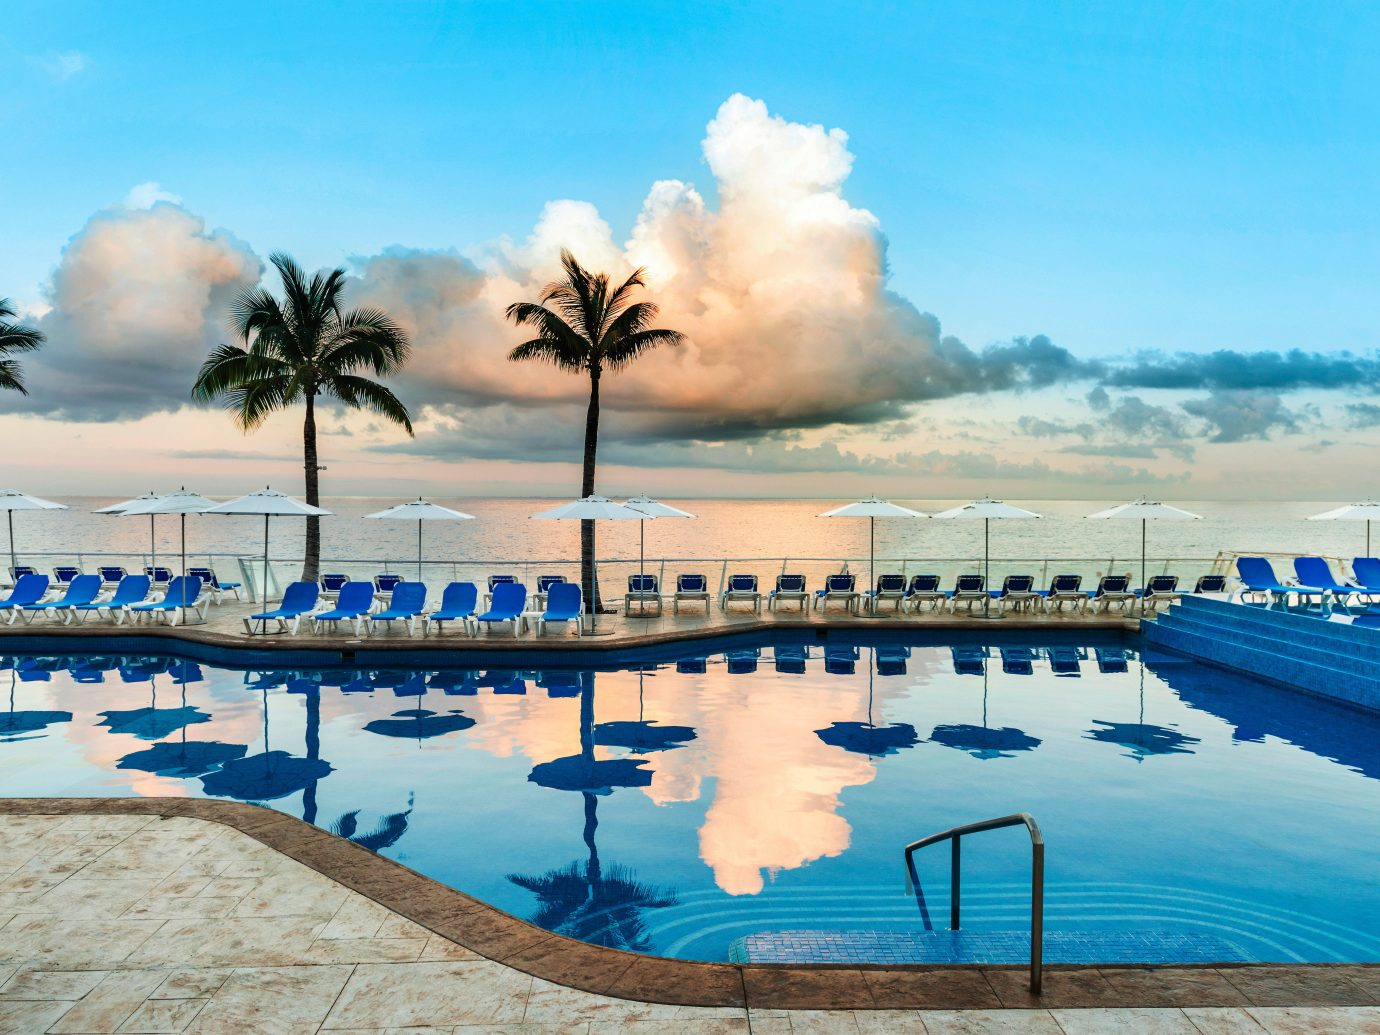 All-inclusive Beachfront Hotels Lounge Luxury Romance sky water outdoor swimming pool vacation Sea Resort Ocean Beach estate arecales caribbean Lagoon bay shore several day